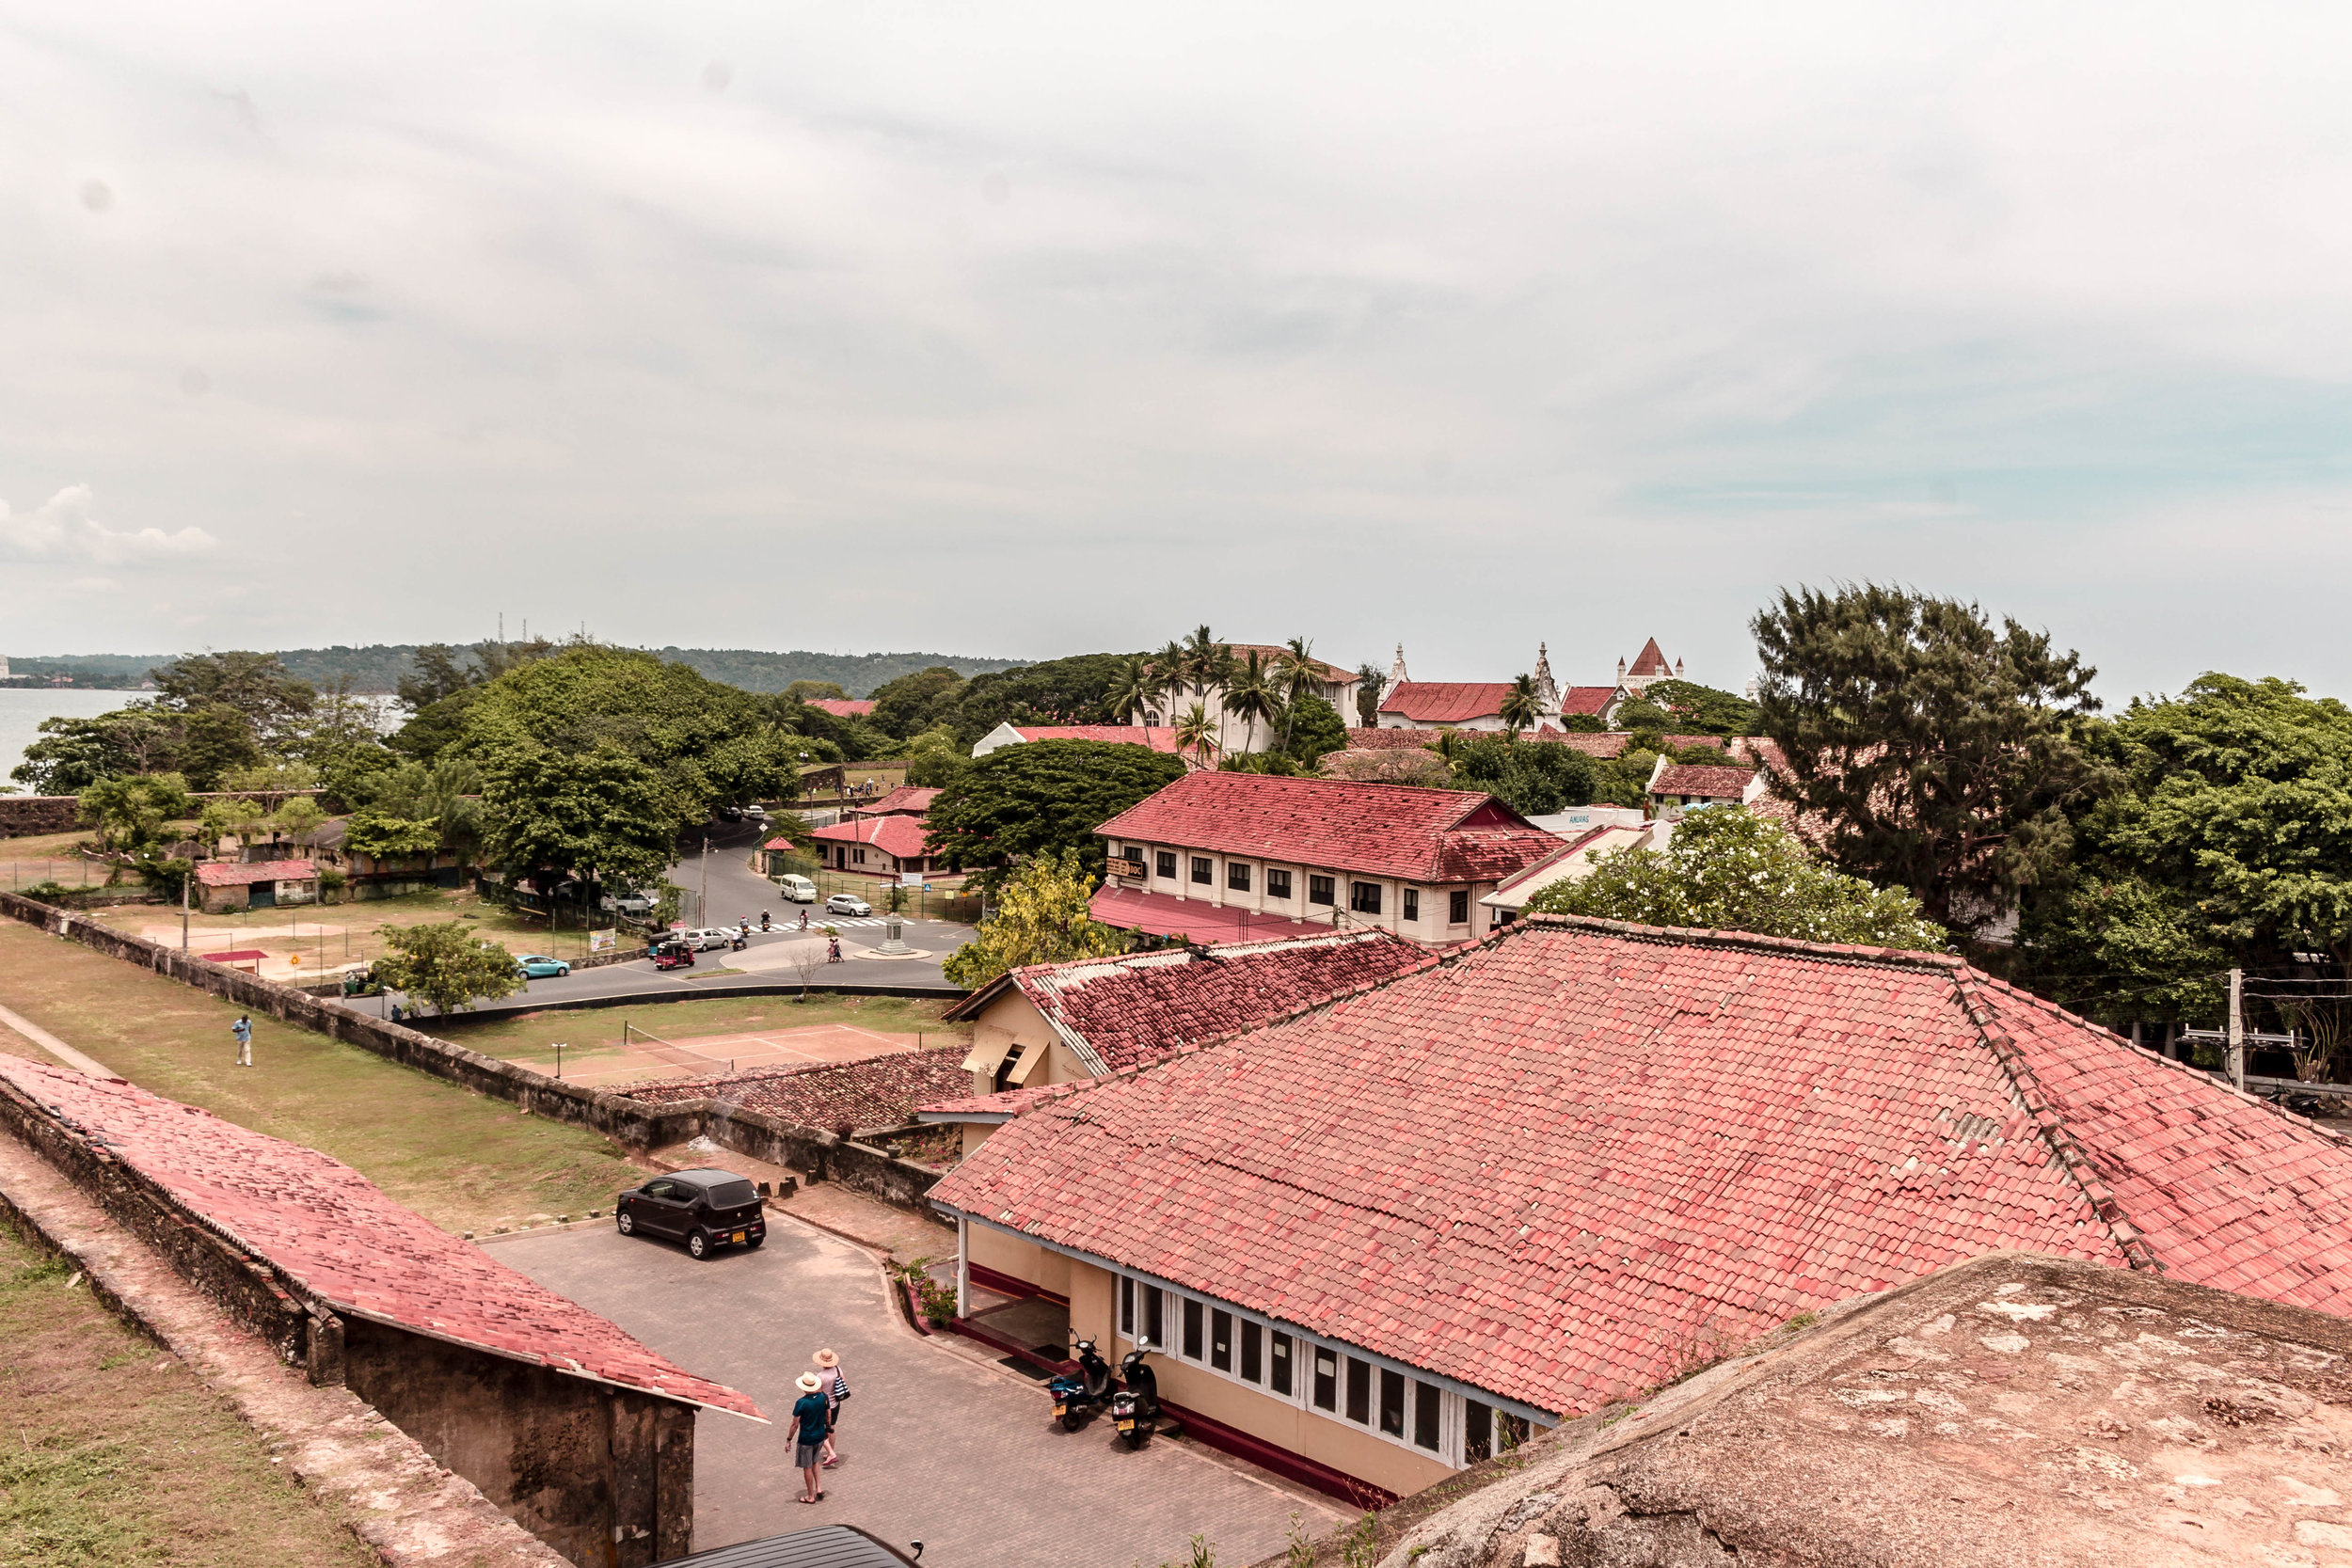 THE RED ROOFS OF GALLE, SRI LANKA